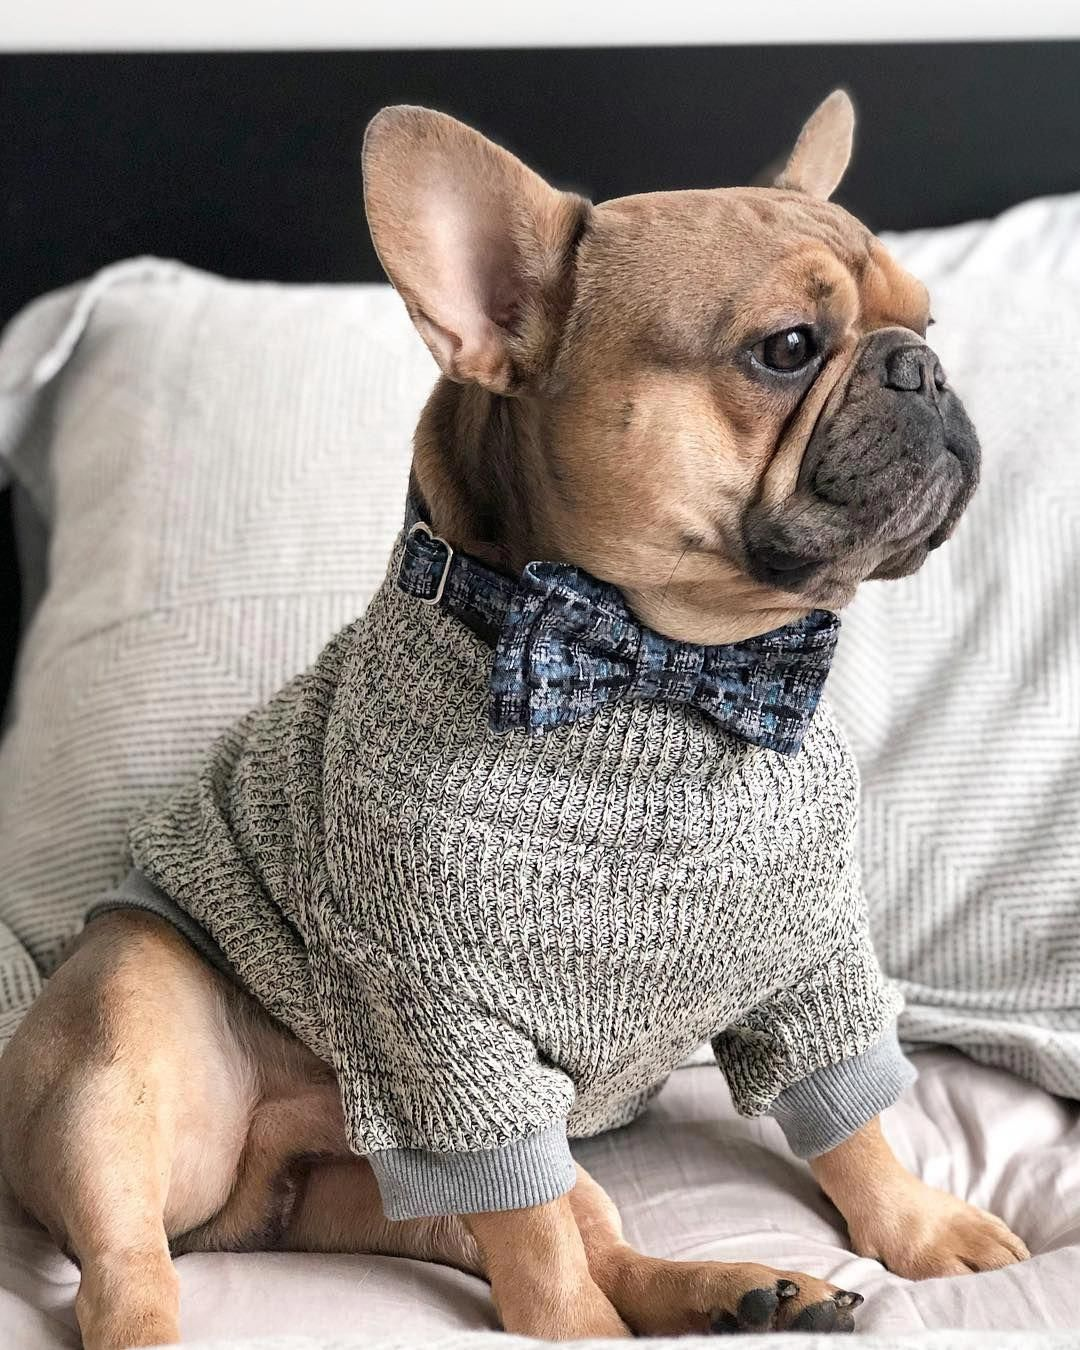 Archie The French Bulldog Puppy By Archie Frenchie On Instagram Bulldogpuppies Bulldog Puppies French Bulldog Clothes French Bulldog Puppies